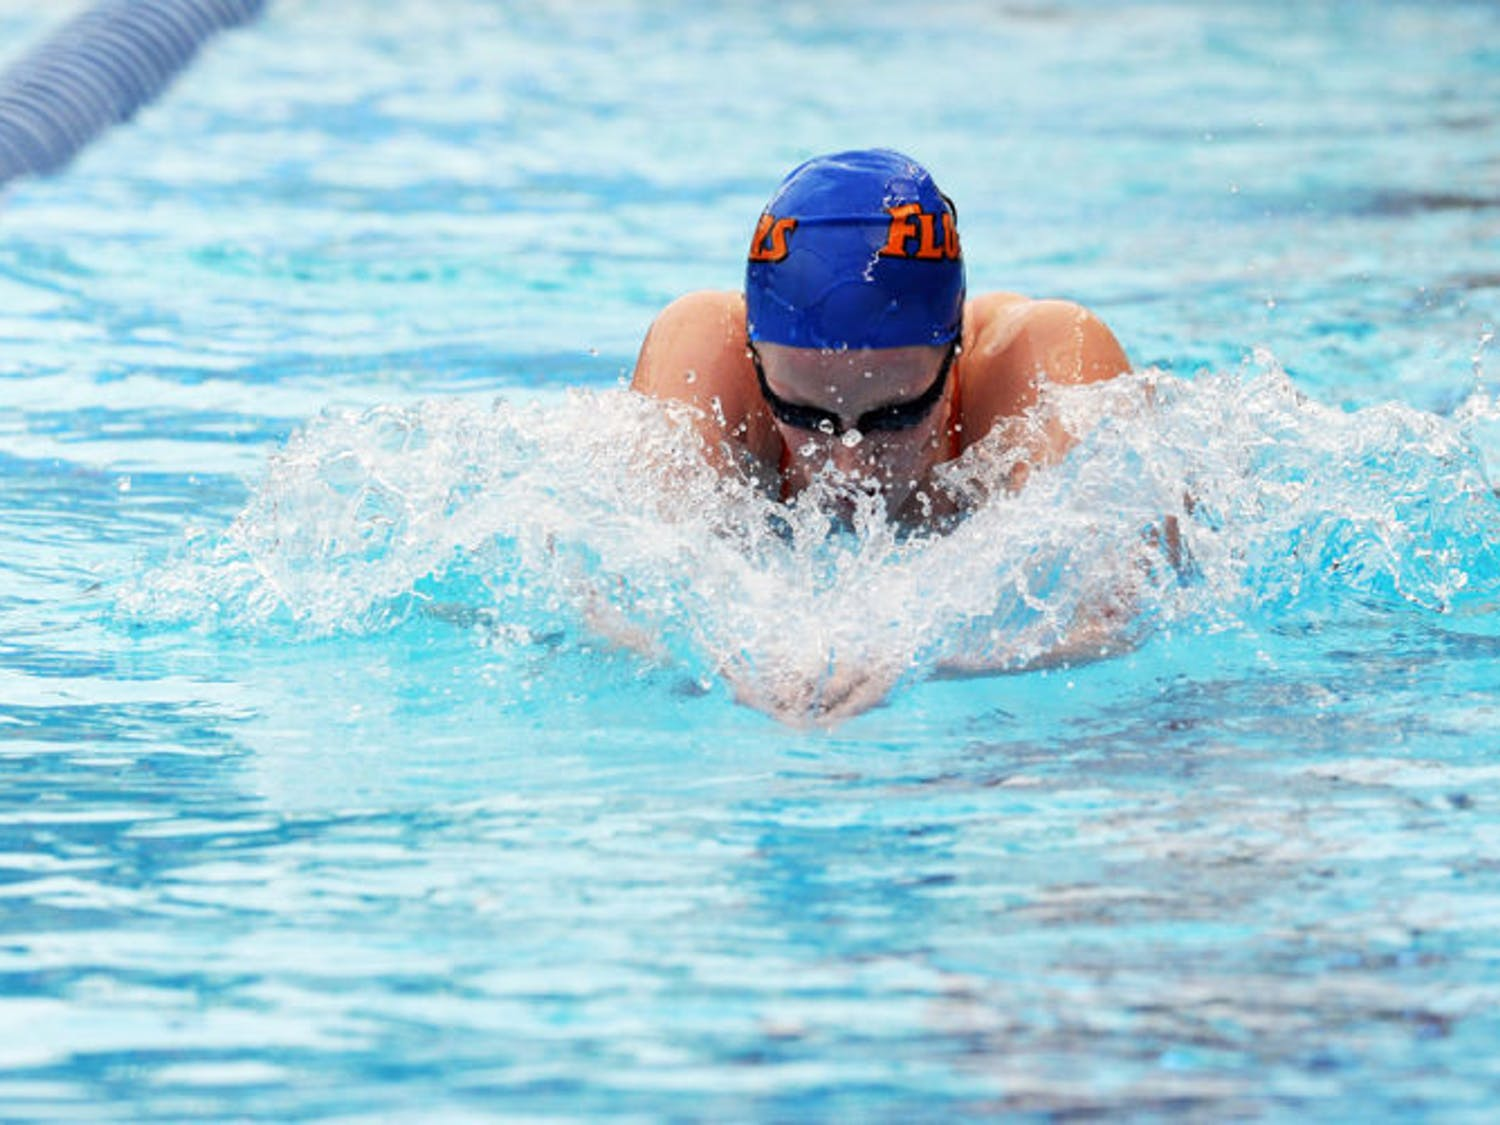 Hilda Luthersdottir (pictured) held the school record for the 200 breast until freshman Vanessa Pearl topped it on Saturday.